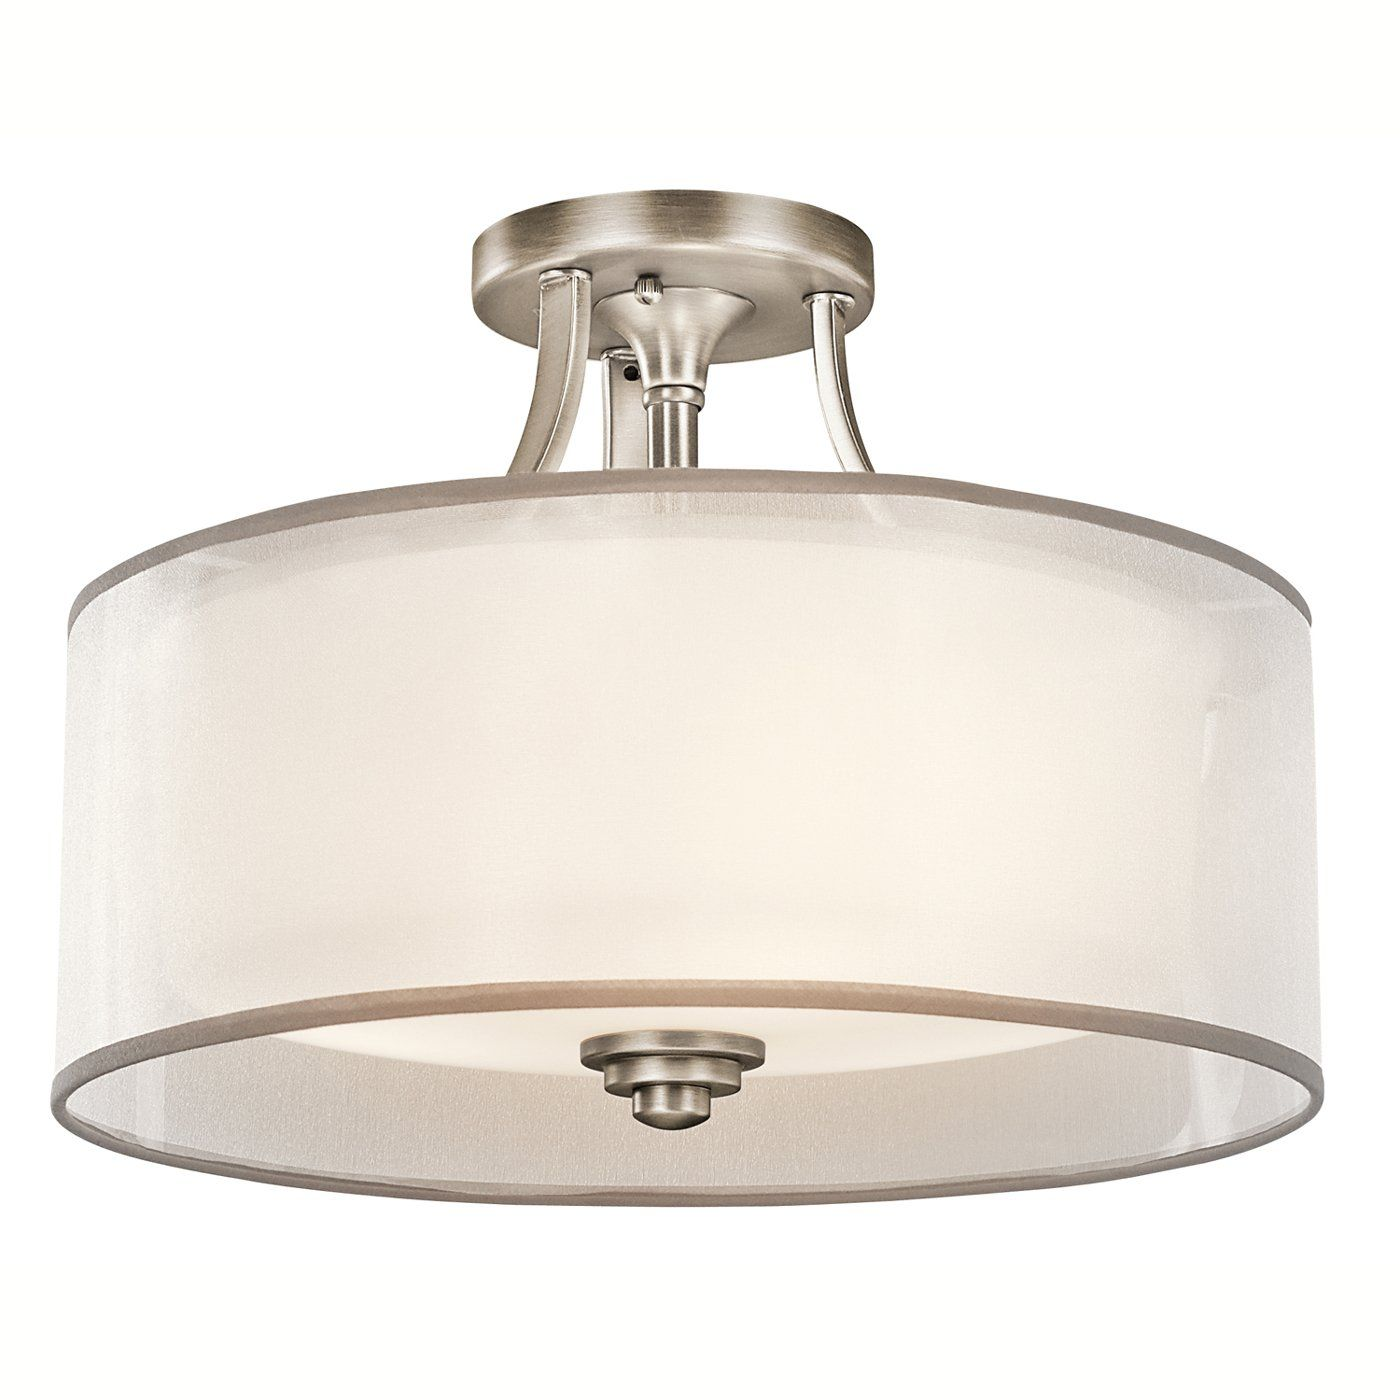 Shop Kichler Lighting 42386 3 Light Lacey Medium Semi Flush